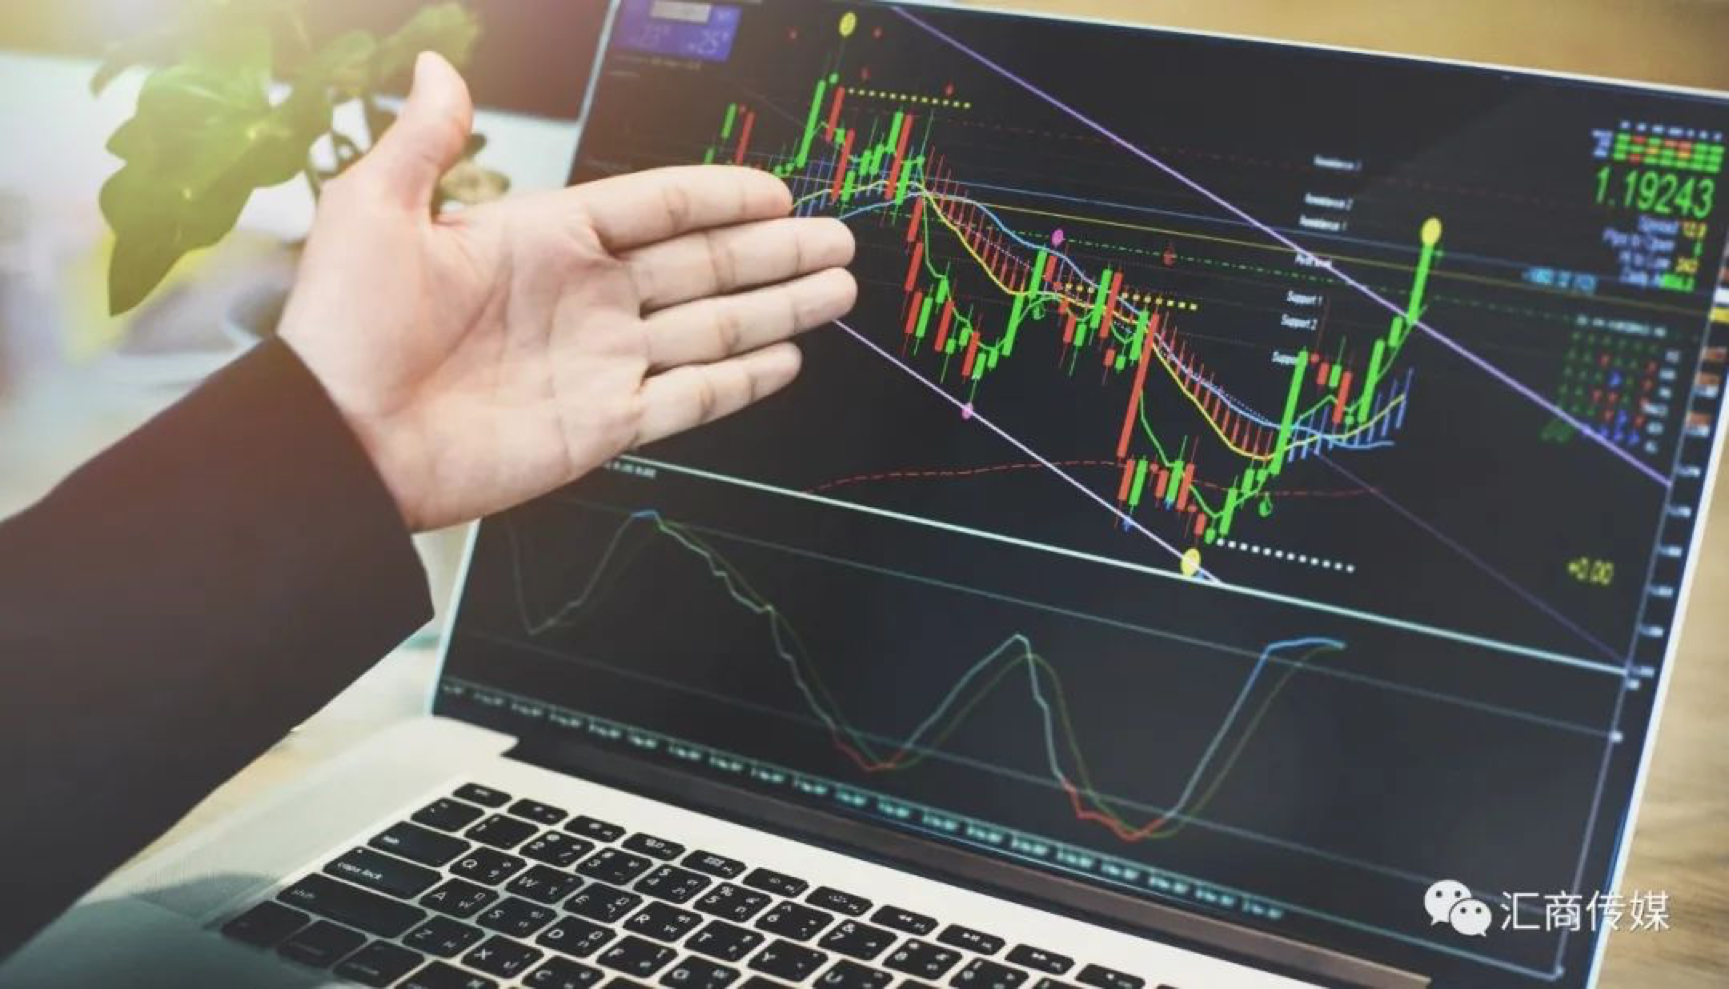 3 Minutes to Understand the Simplest Trading Strategy (1) – Weekly High-low Breakout Method